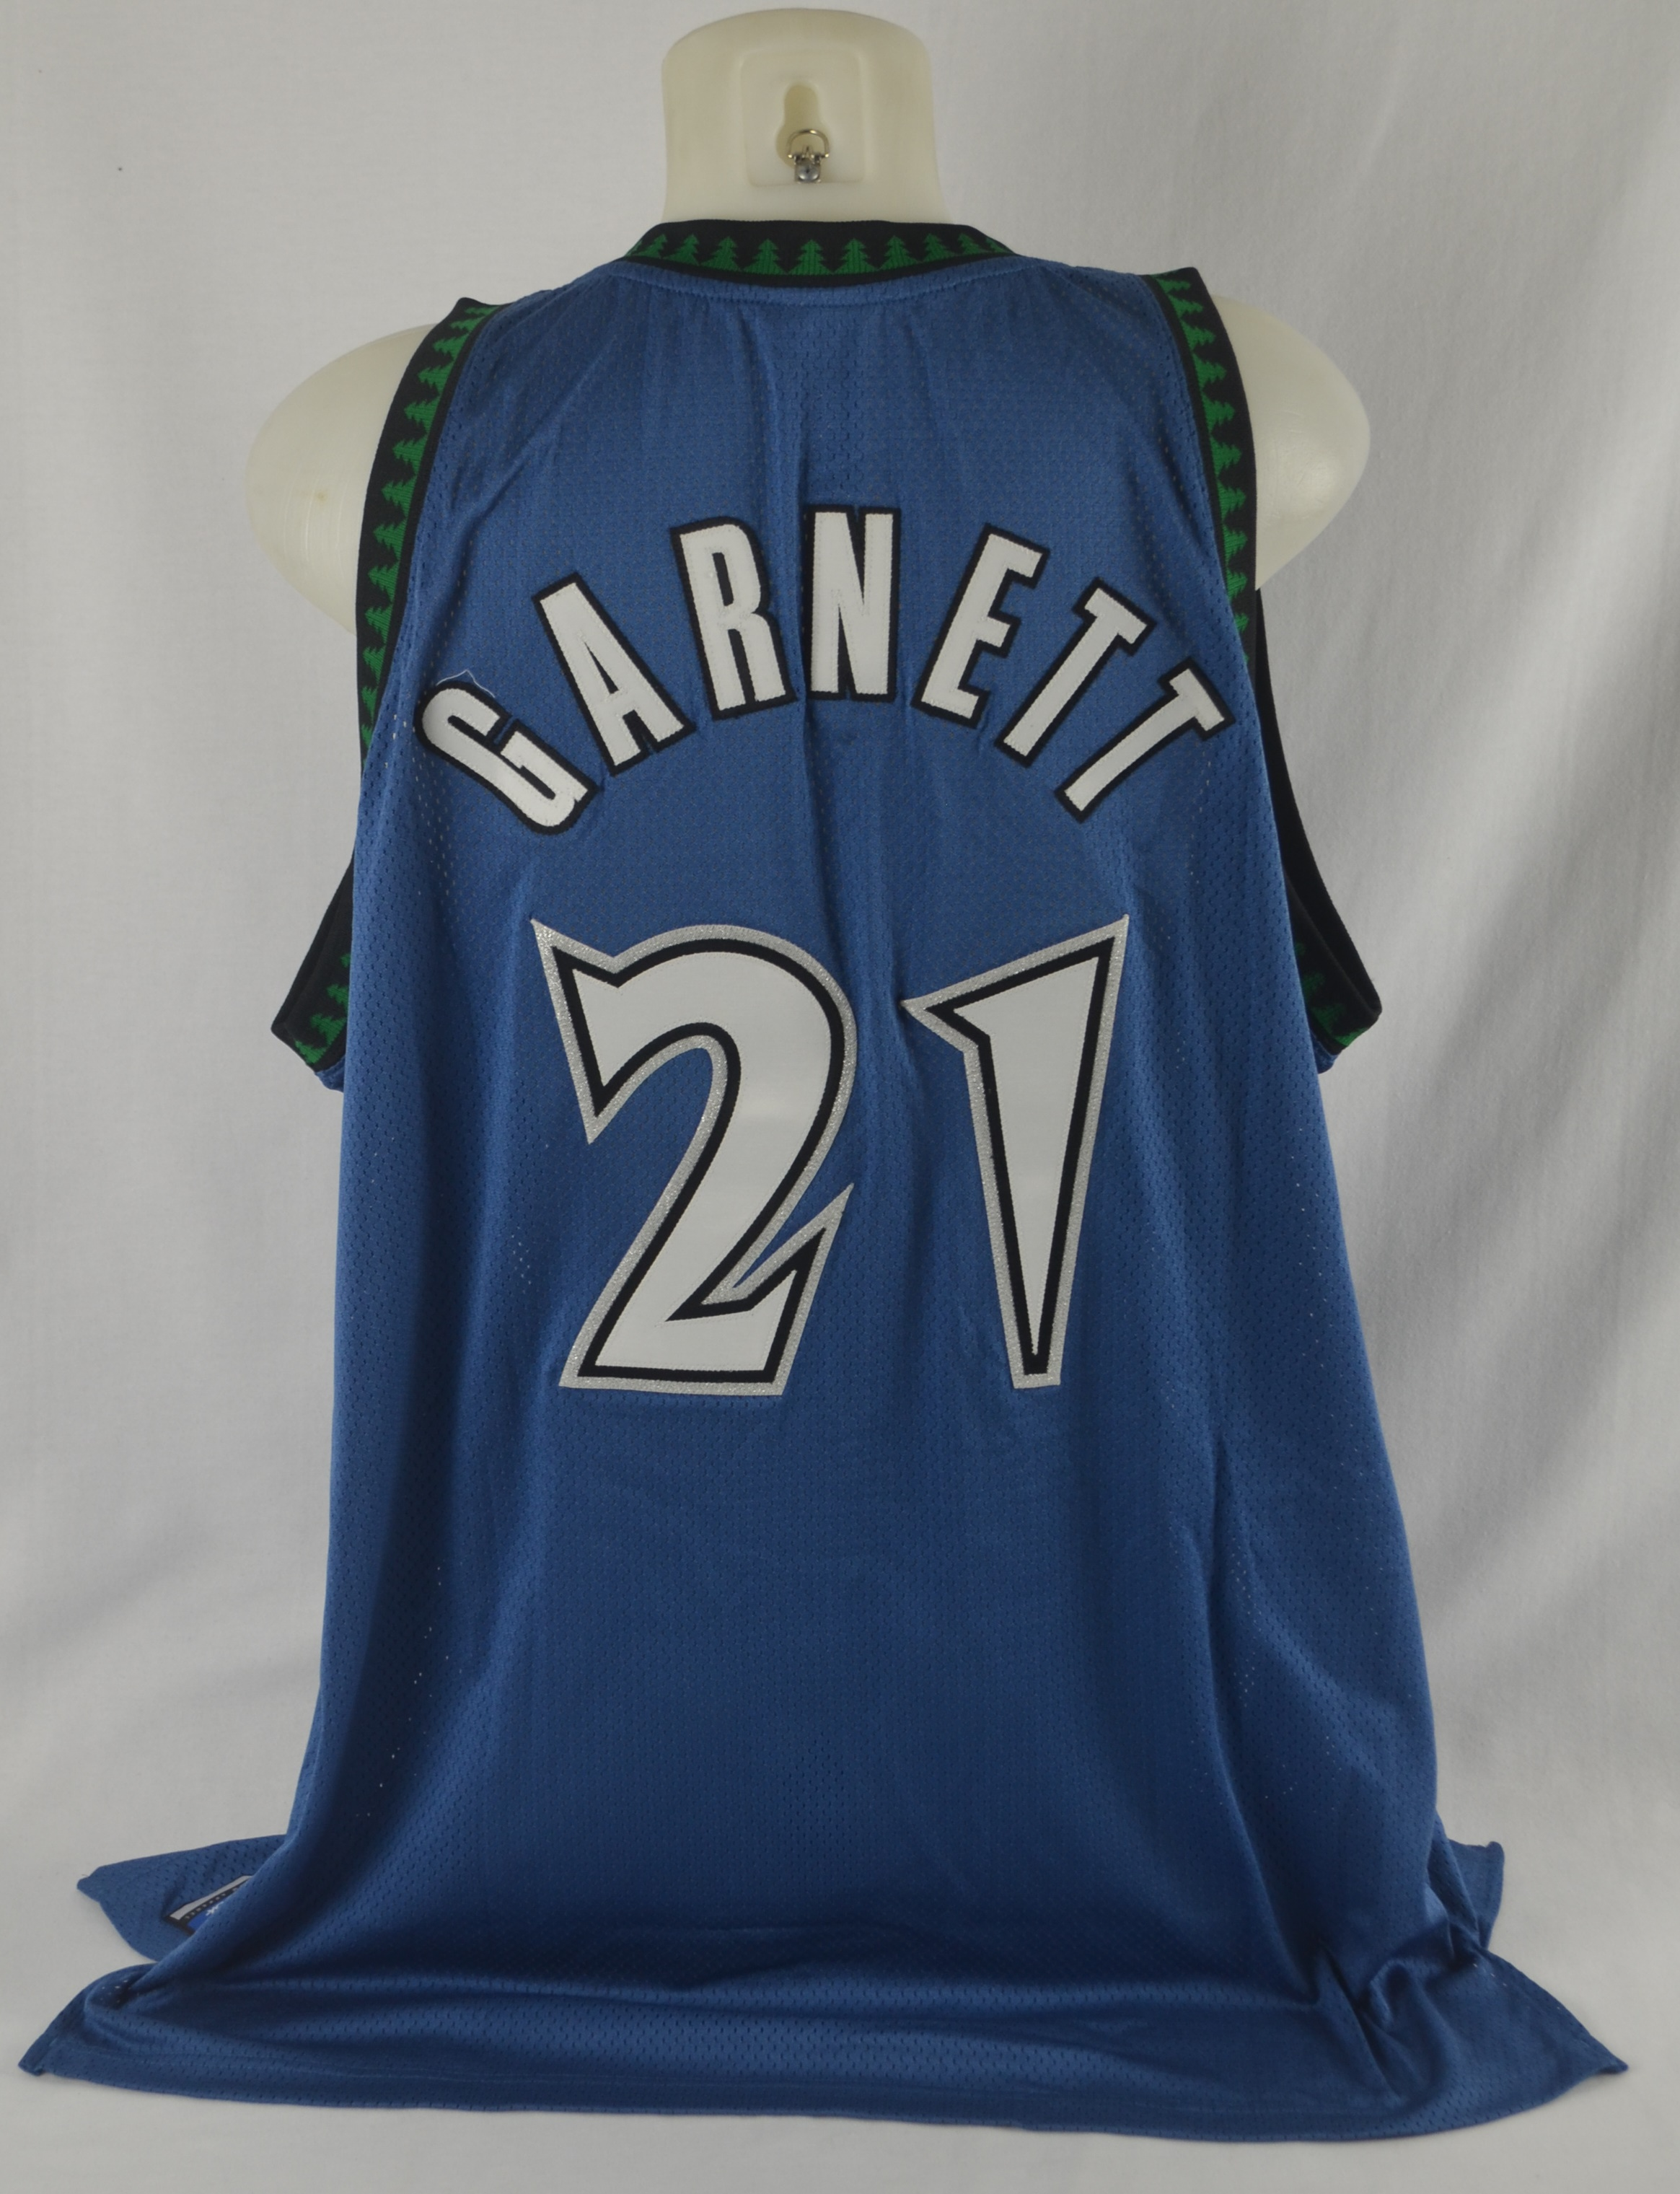 finest selection 0633c d6fde Lot Detail - Kevin Garnett Autographed Limited Edition 2004 ...